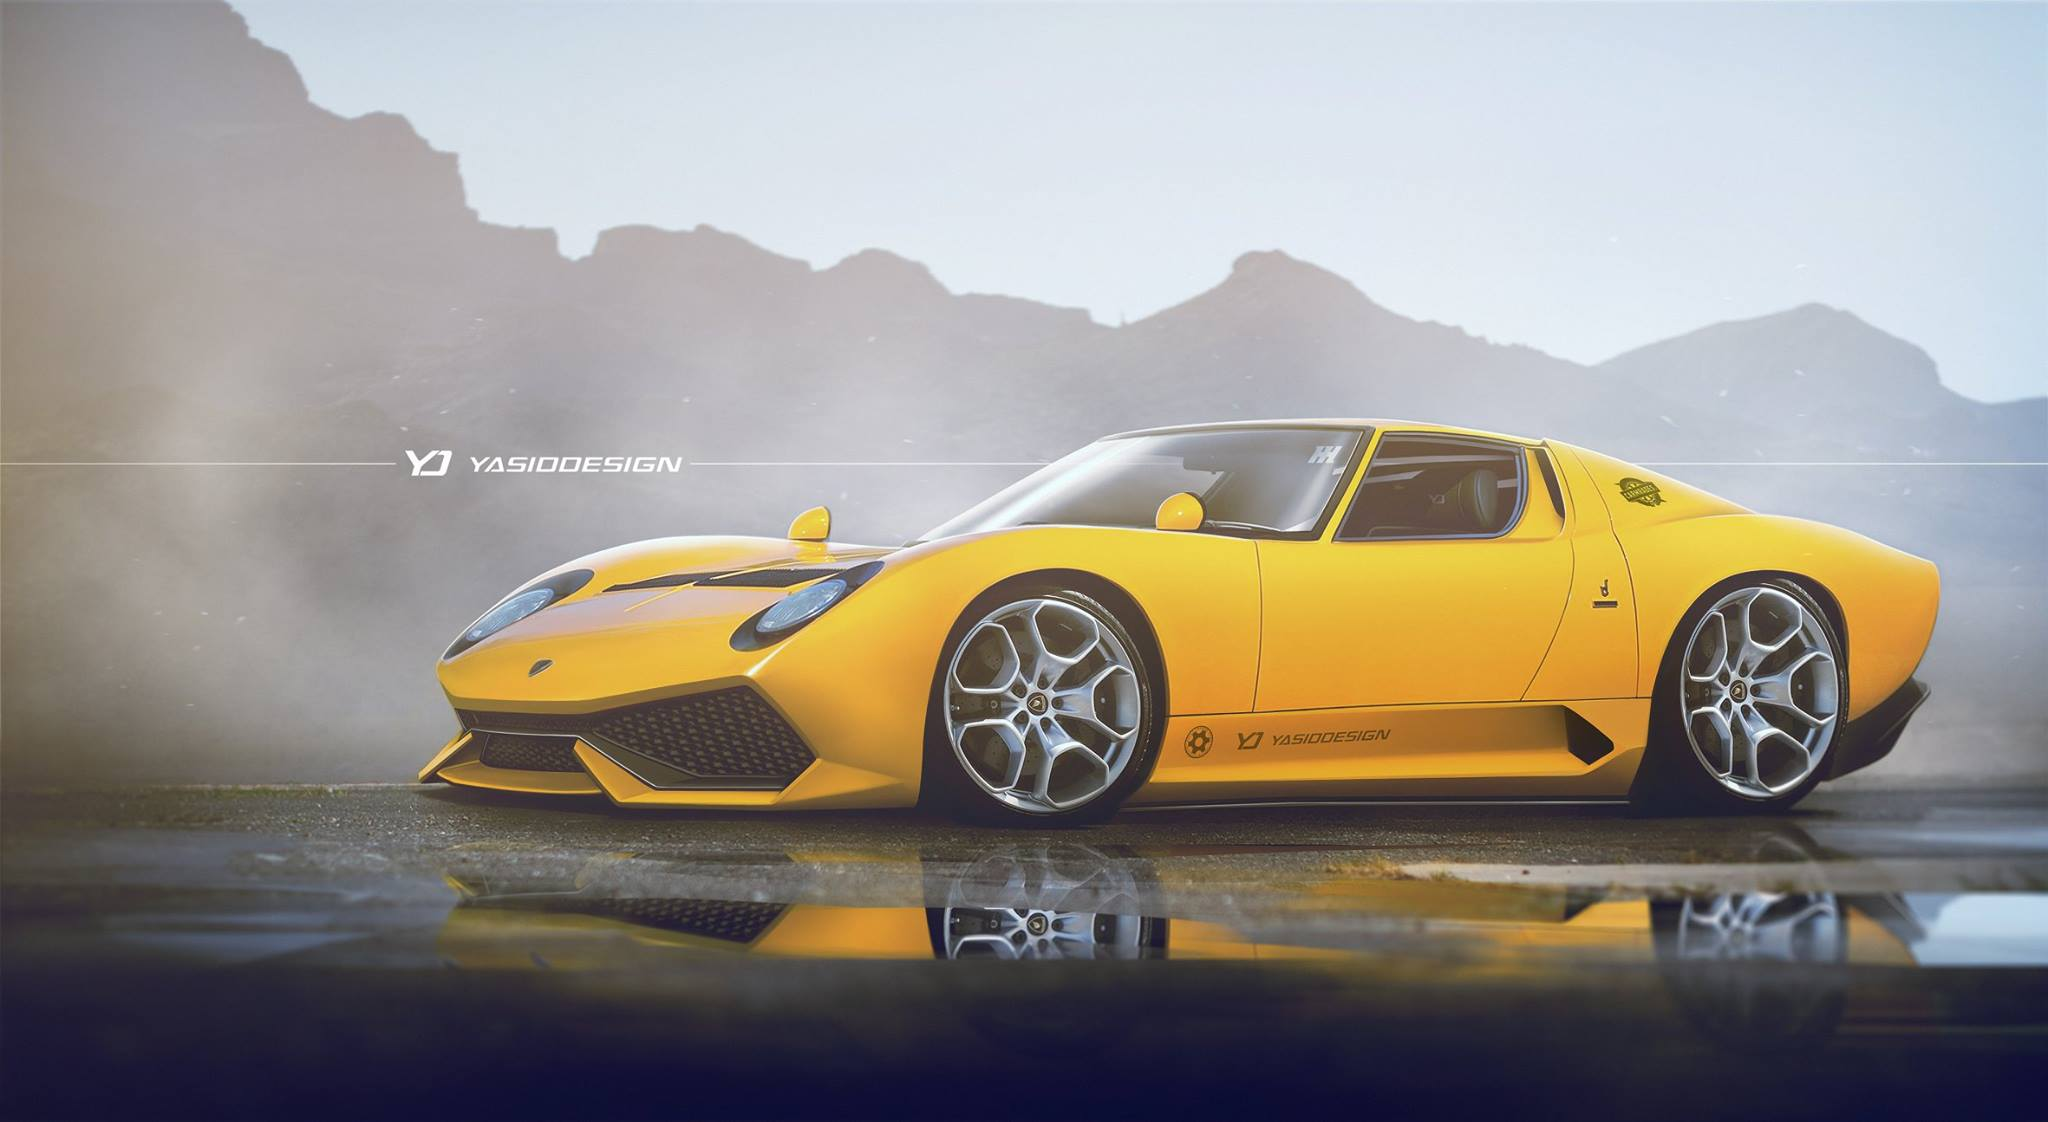 Lamborghini Miura Meets Huracan In Miuracan Mashup That Will Offend